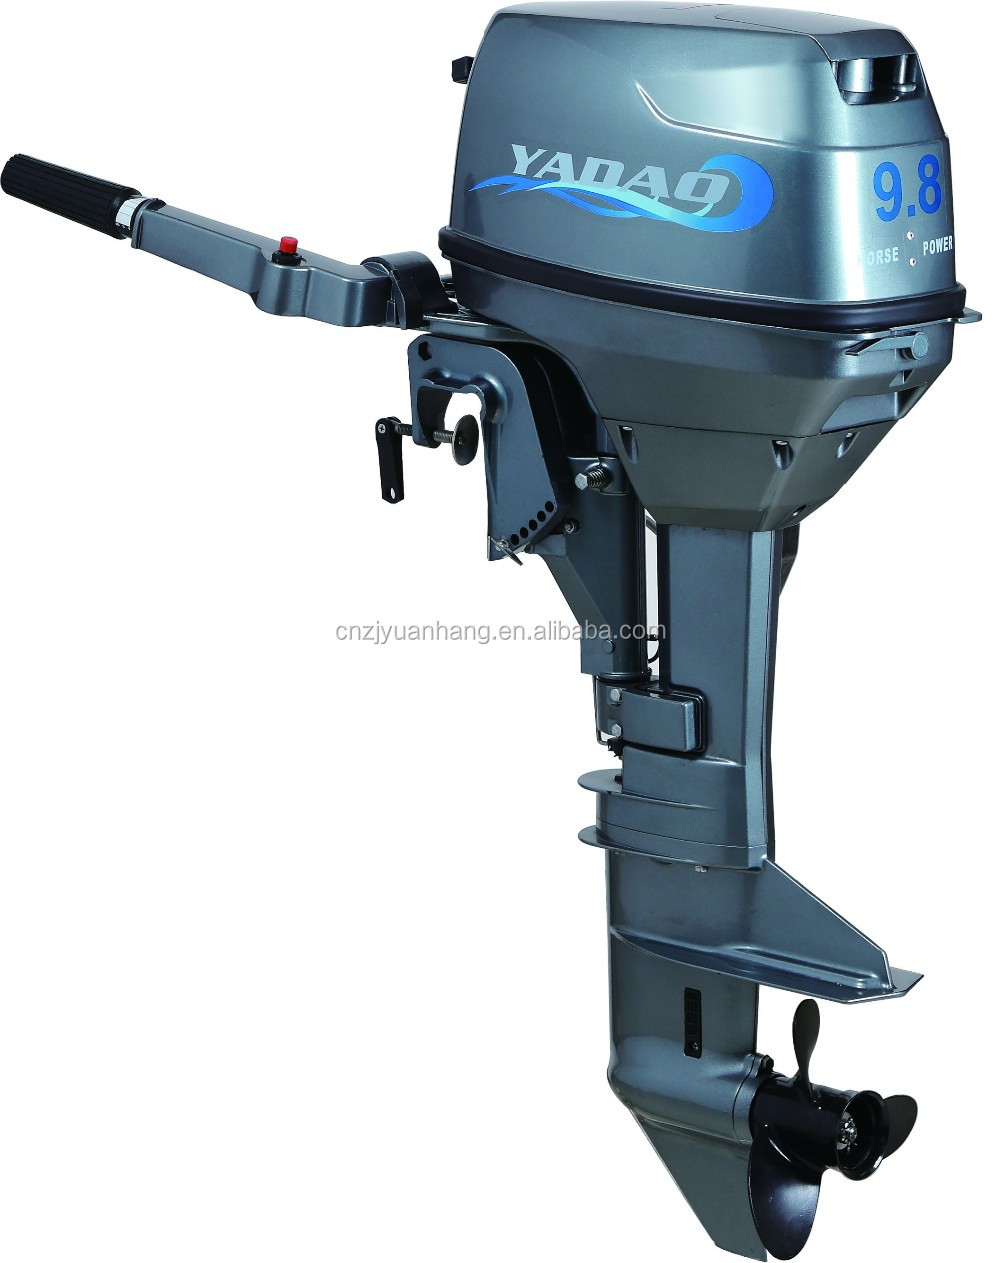 New condition 2 stroke outboard engine postion boat for What is the best outboard motor